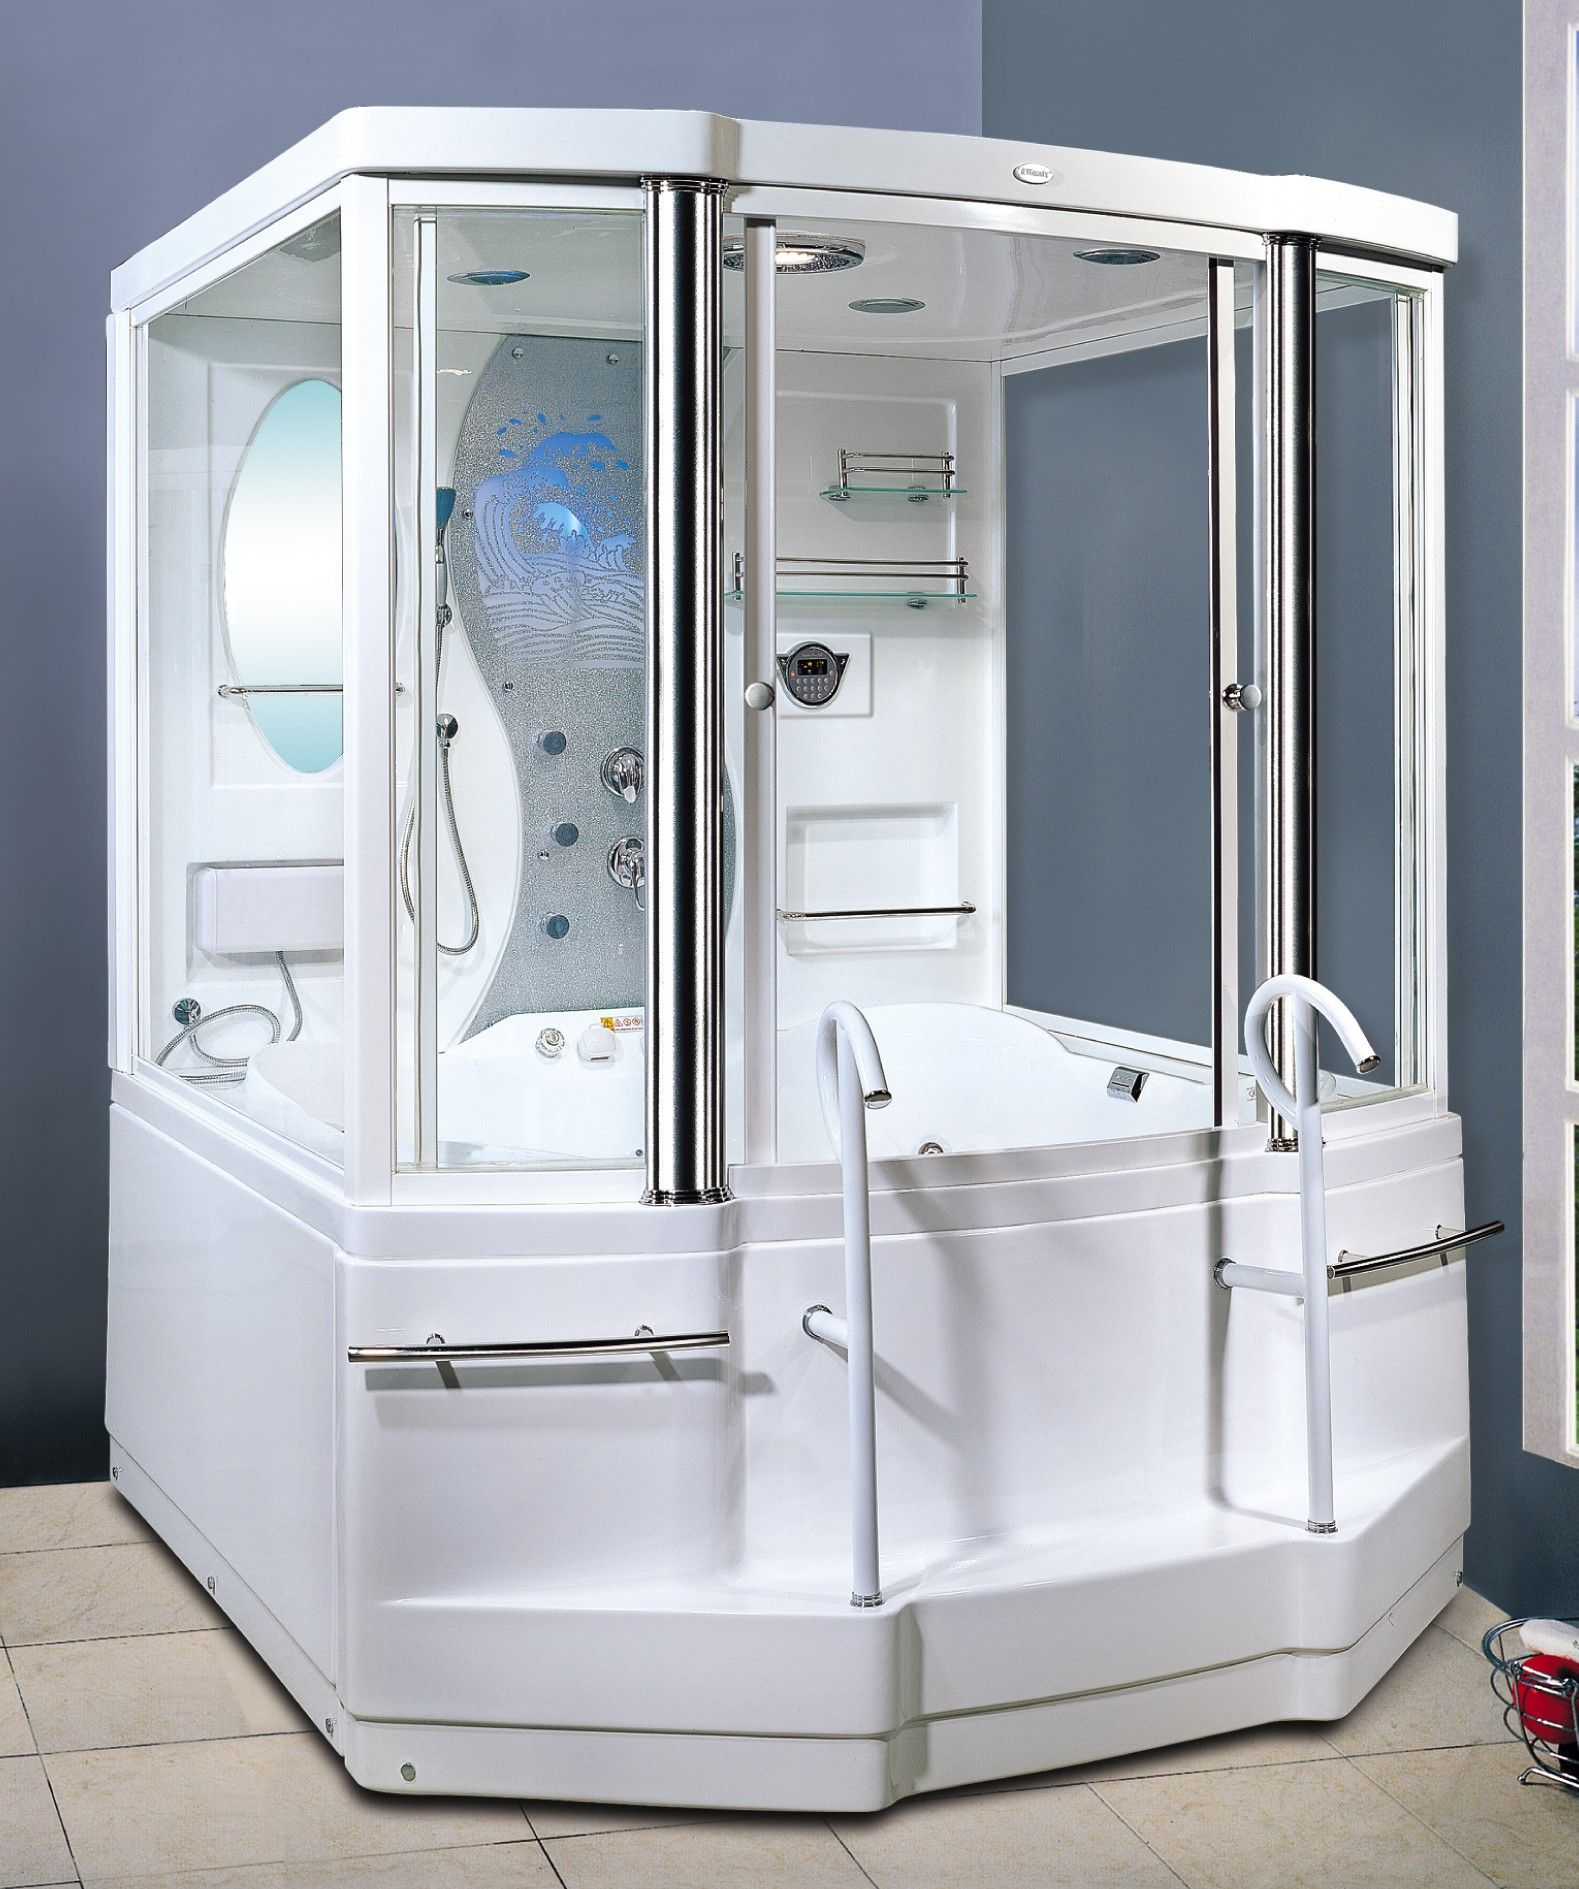 small tub shower units. Classy Small Bathroom With Steam Shower And Showers Enclosures  Tubs Modern Designs show Awesome White Soaking Tub Combination For High Tech